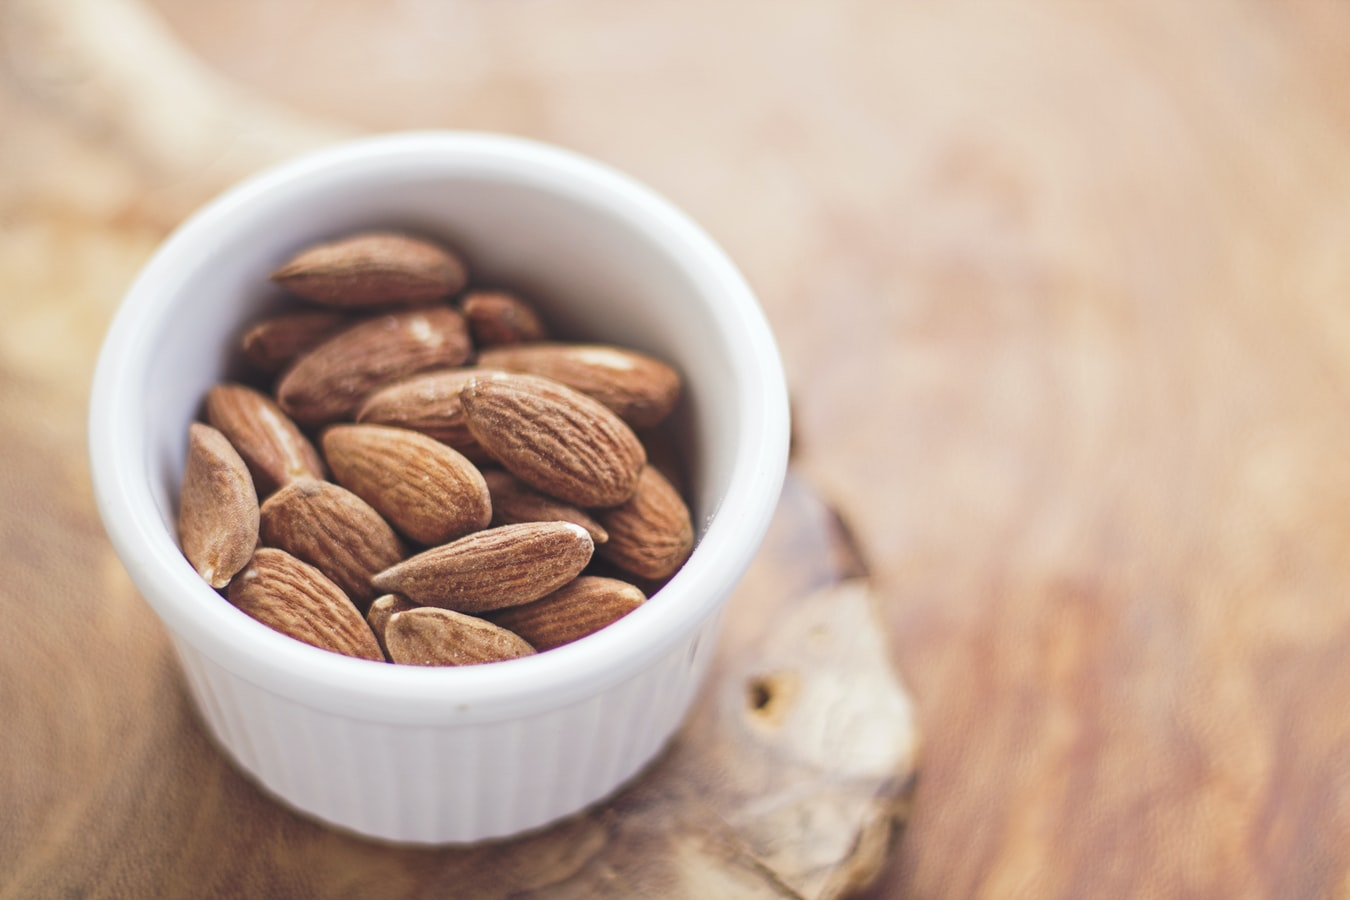 Cup of almonds on a table Photo by Juan Jos� Valencia Ant�a on Unsplash